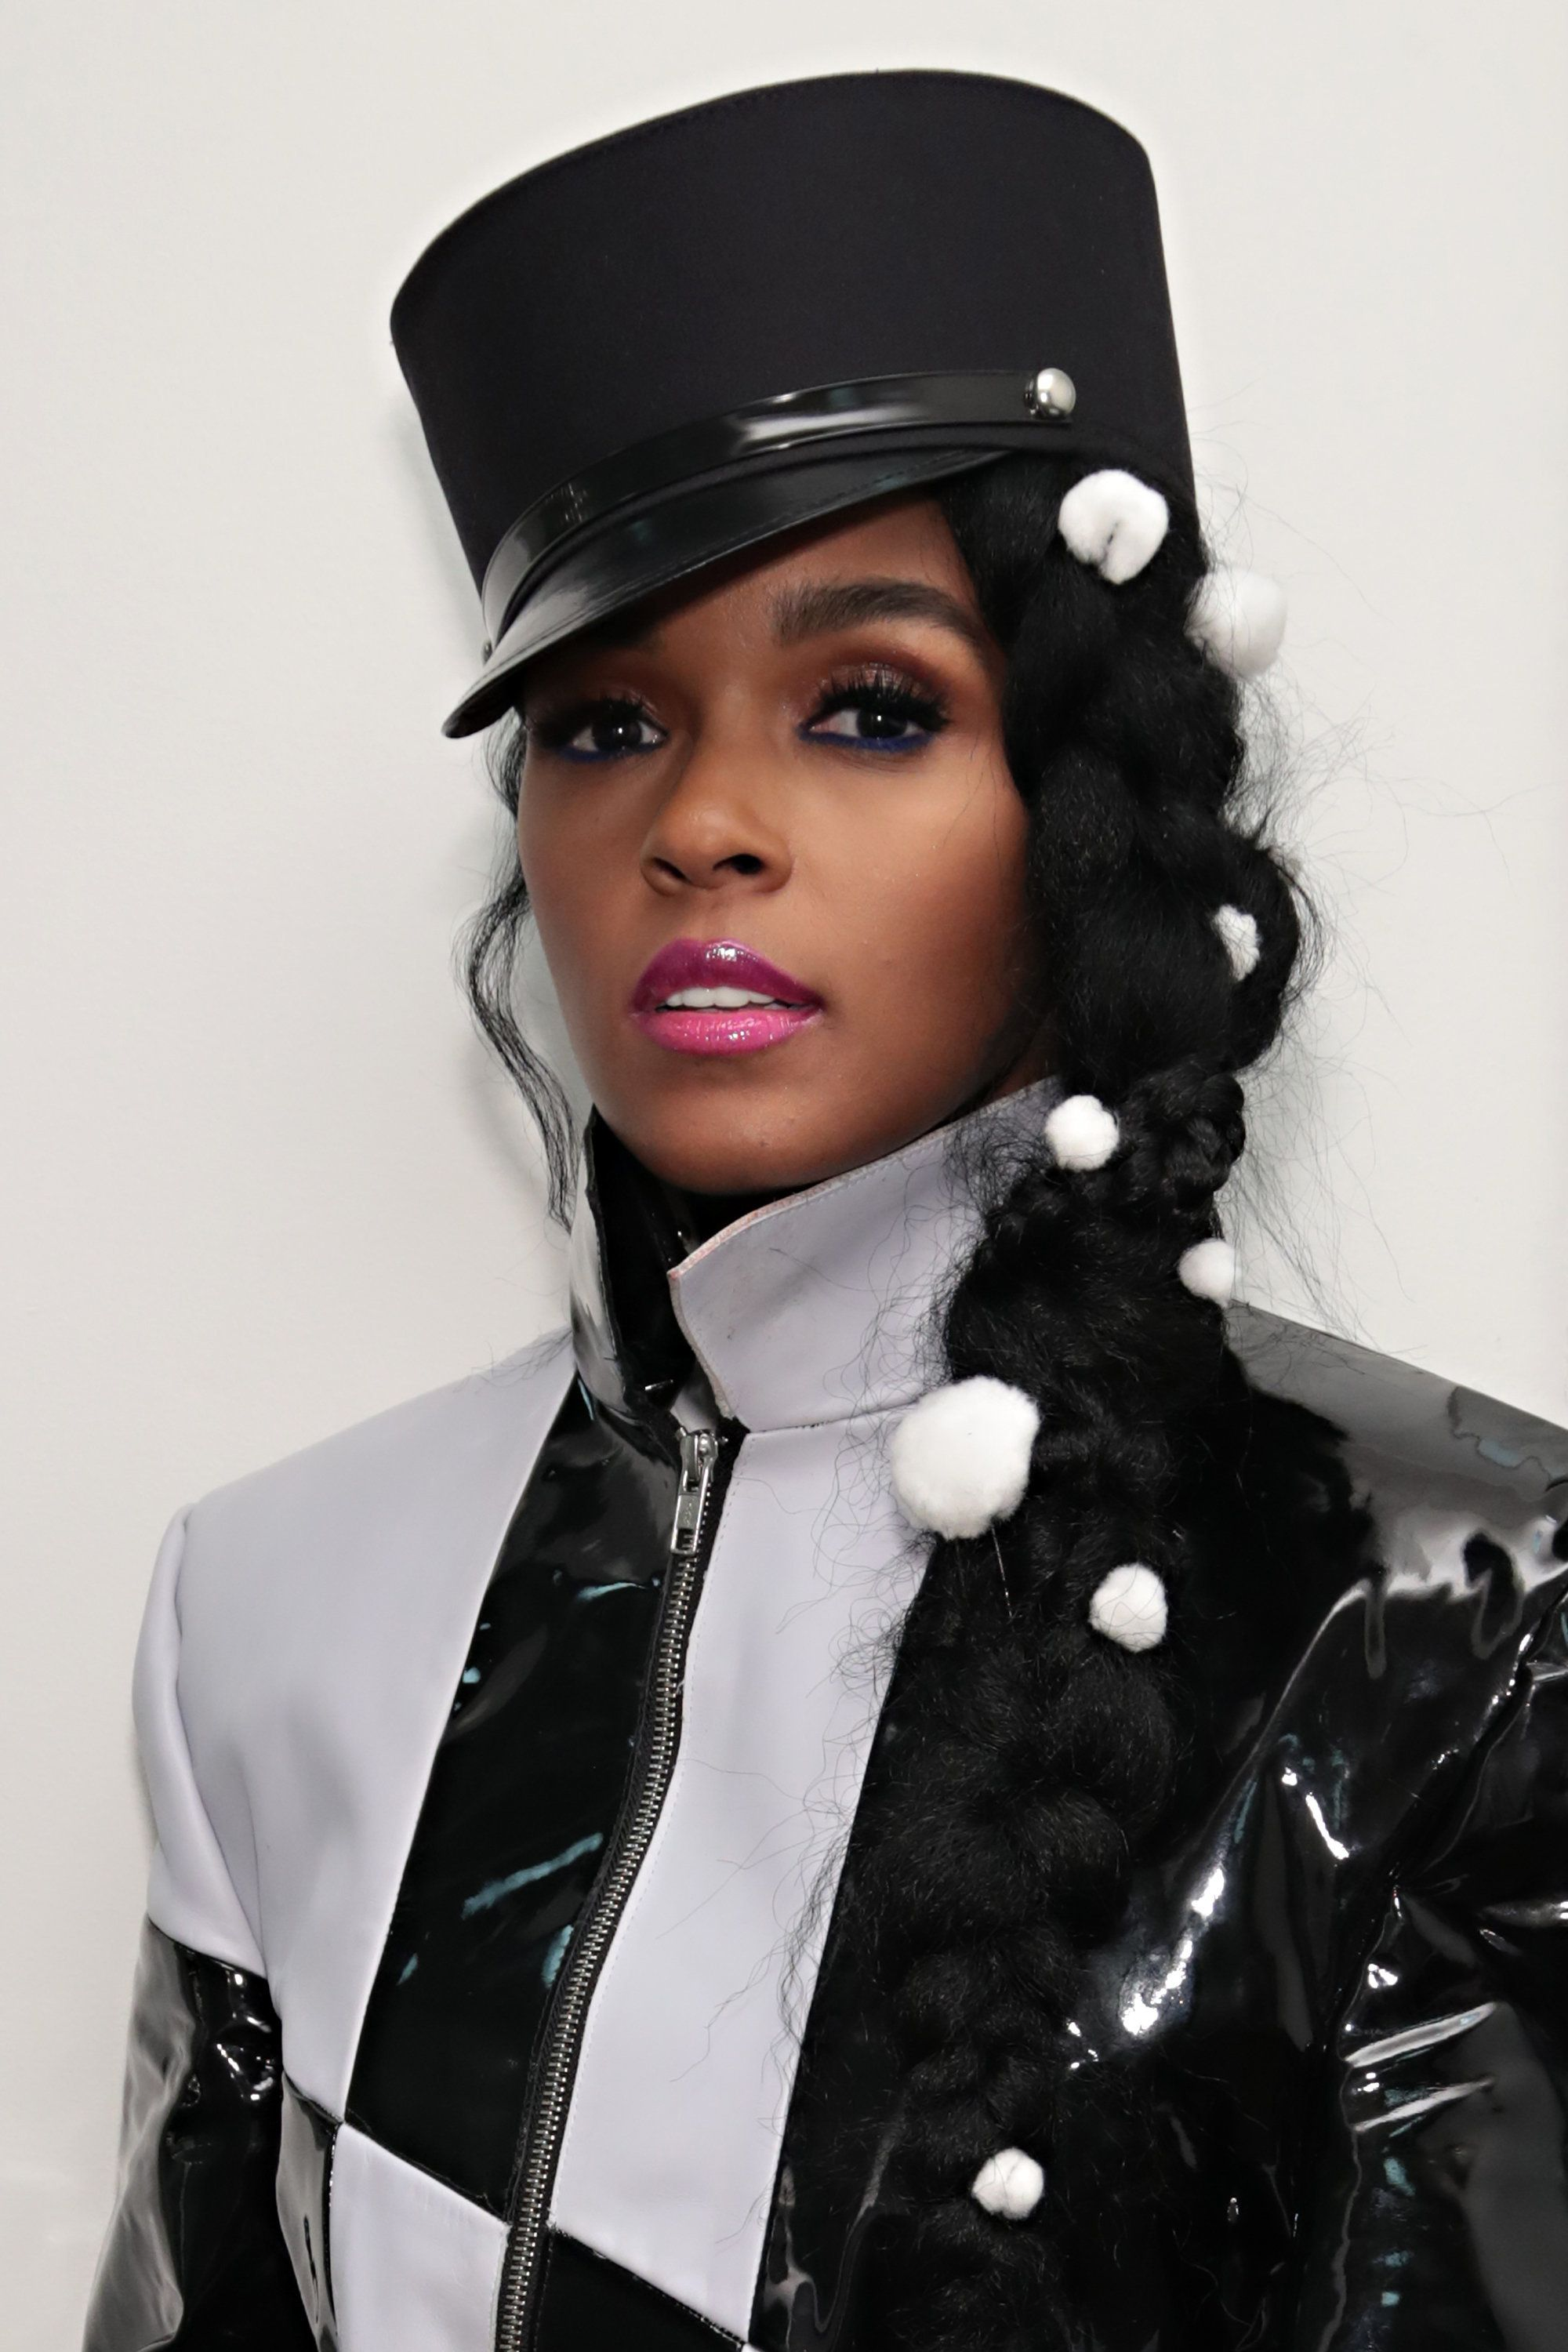 NEW YORK, NY - APRIL 23:  Recording artist/ actress Janelle Monae attends the 'Dirty Computer' screening at The Film Society of Lincoln Center, Walter Reade Theatre on April 23, 2018 in New York City.  (Photo by Cindy Ord/Getty Images for Atlantic Records)